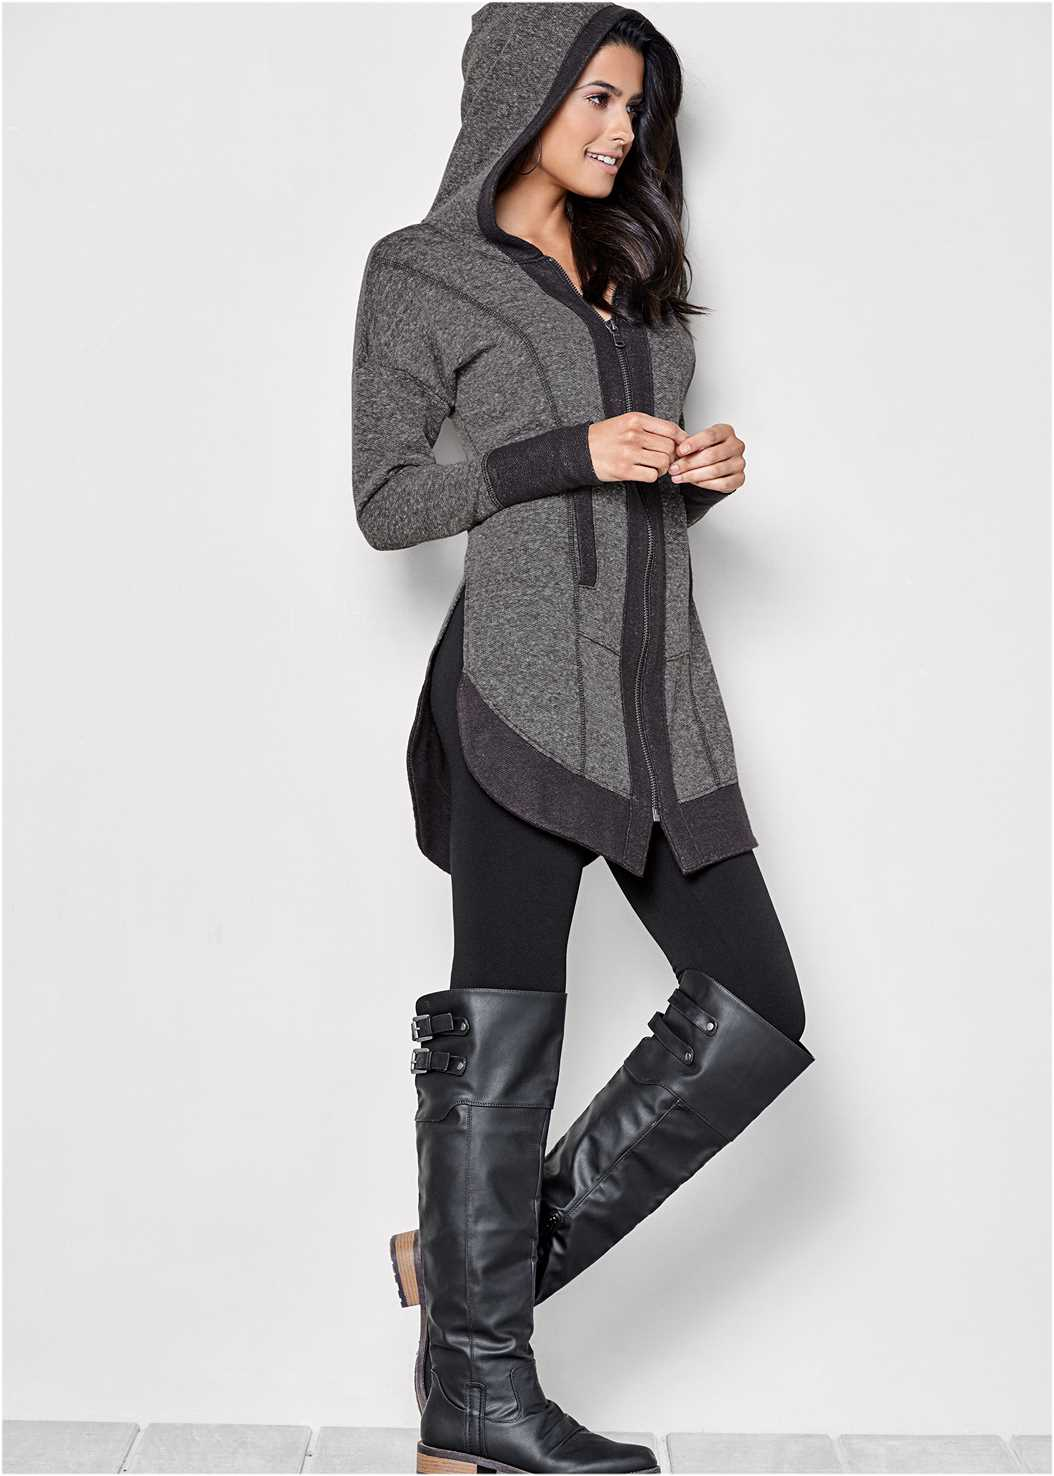 Tunic Length Zip Up Hoodie Jacket,Basic Cami Two Pack,Basic Leggings,Stretch Back Boots